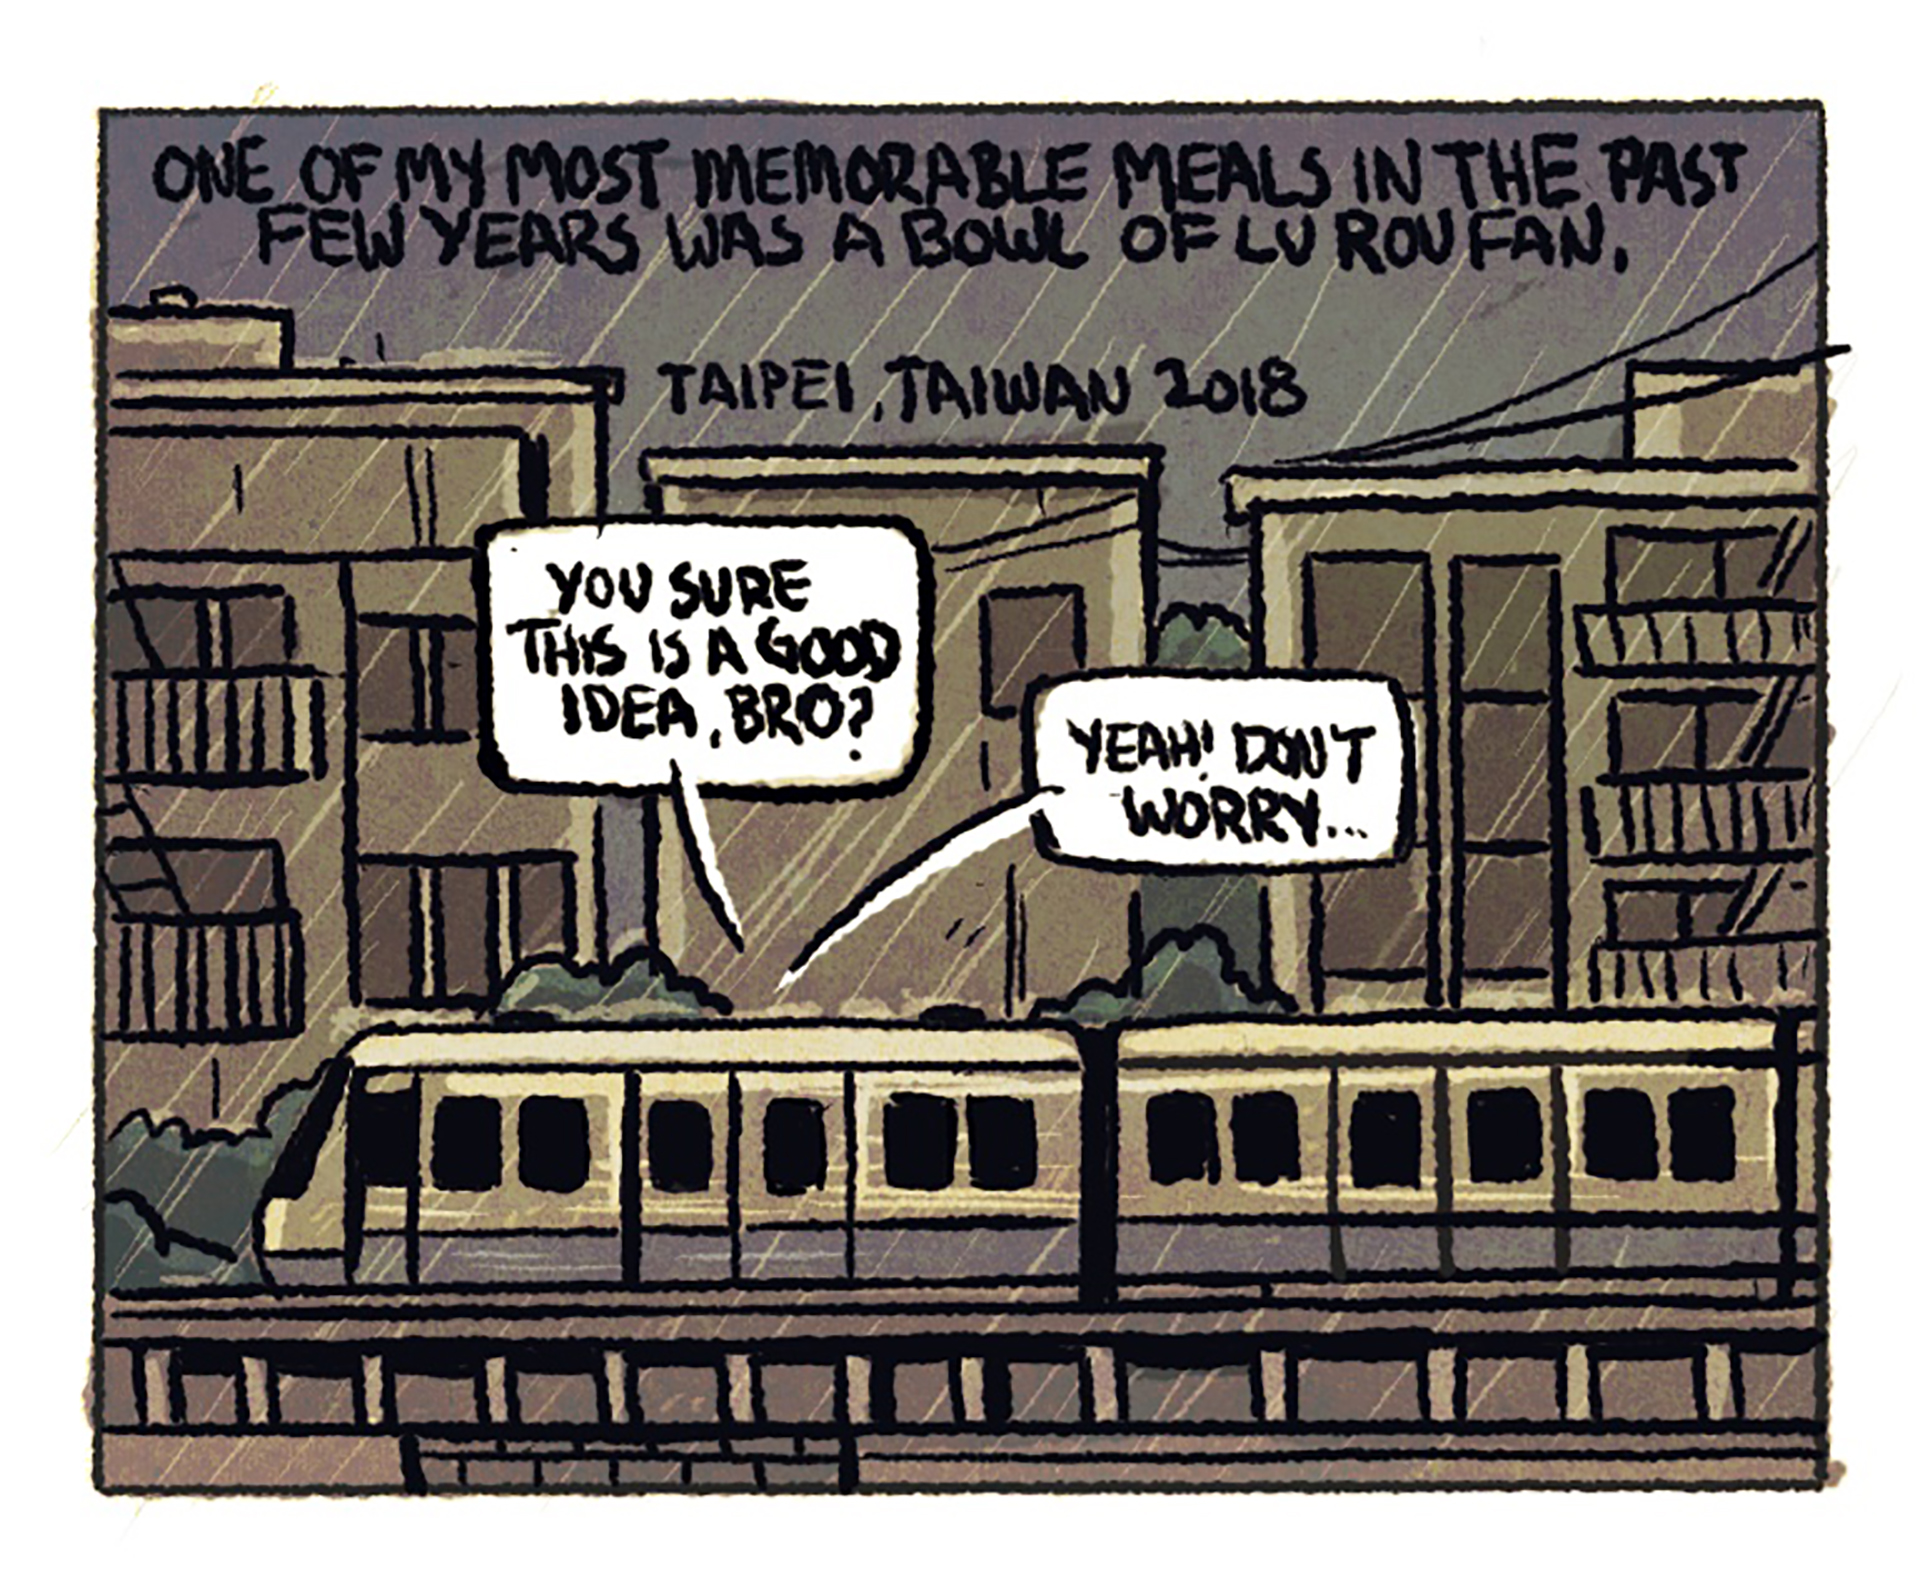 """A subway train is traveling above ground in the rain. The narration reads, """"One of my most memorable meals in the past few years was a bowl of lu rou fan; Taipei, Taiwan 2018."""" 1st speech bubble: """"You sure this is a good idea, bro?"""" 2nd speech bubble: """"Yeah! Don't worry..."""""""